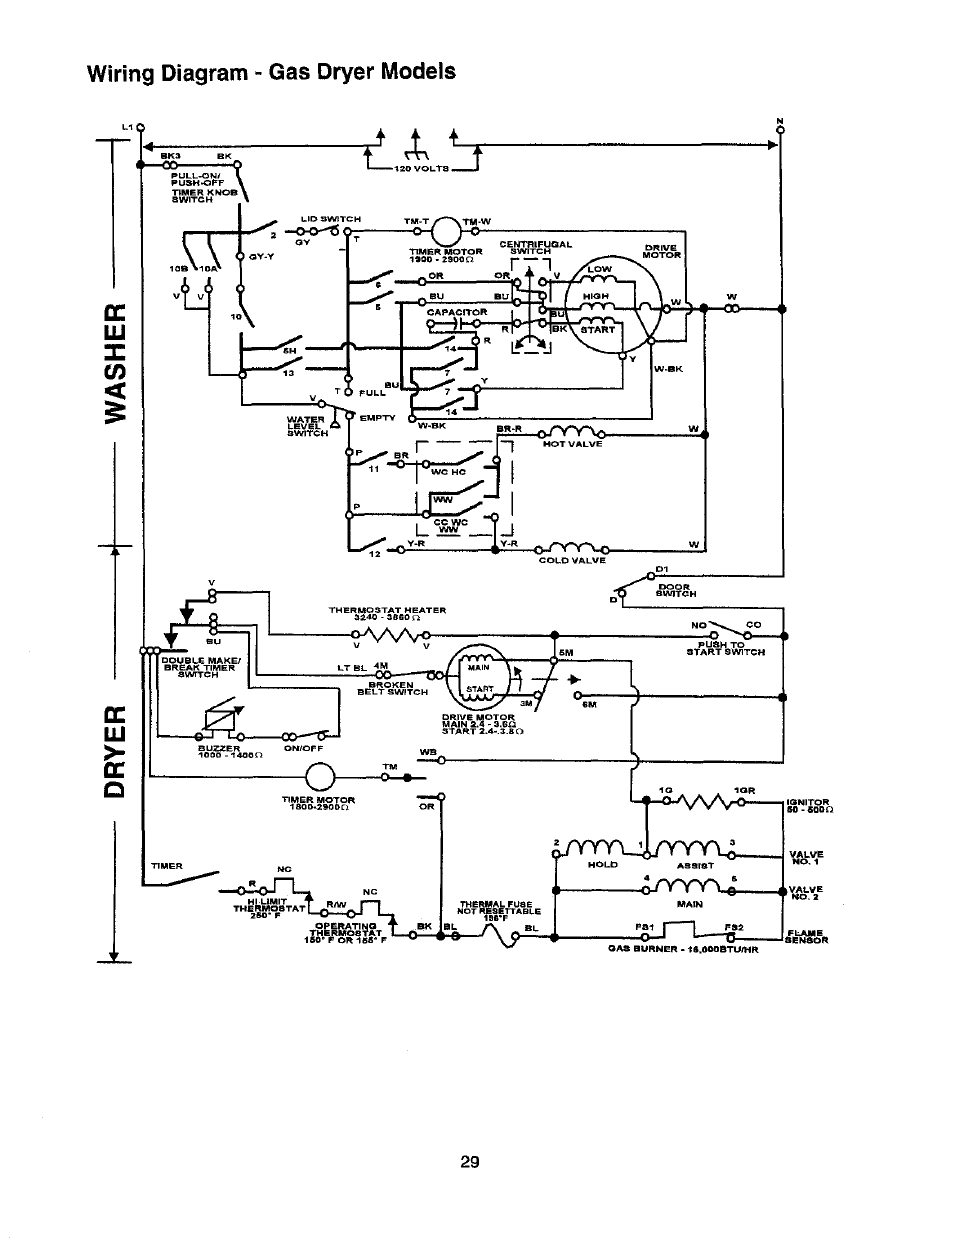 Wiring Diagram For Maytag Dryer : Wiring diagram gas dryer models whirlpool thin twin